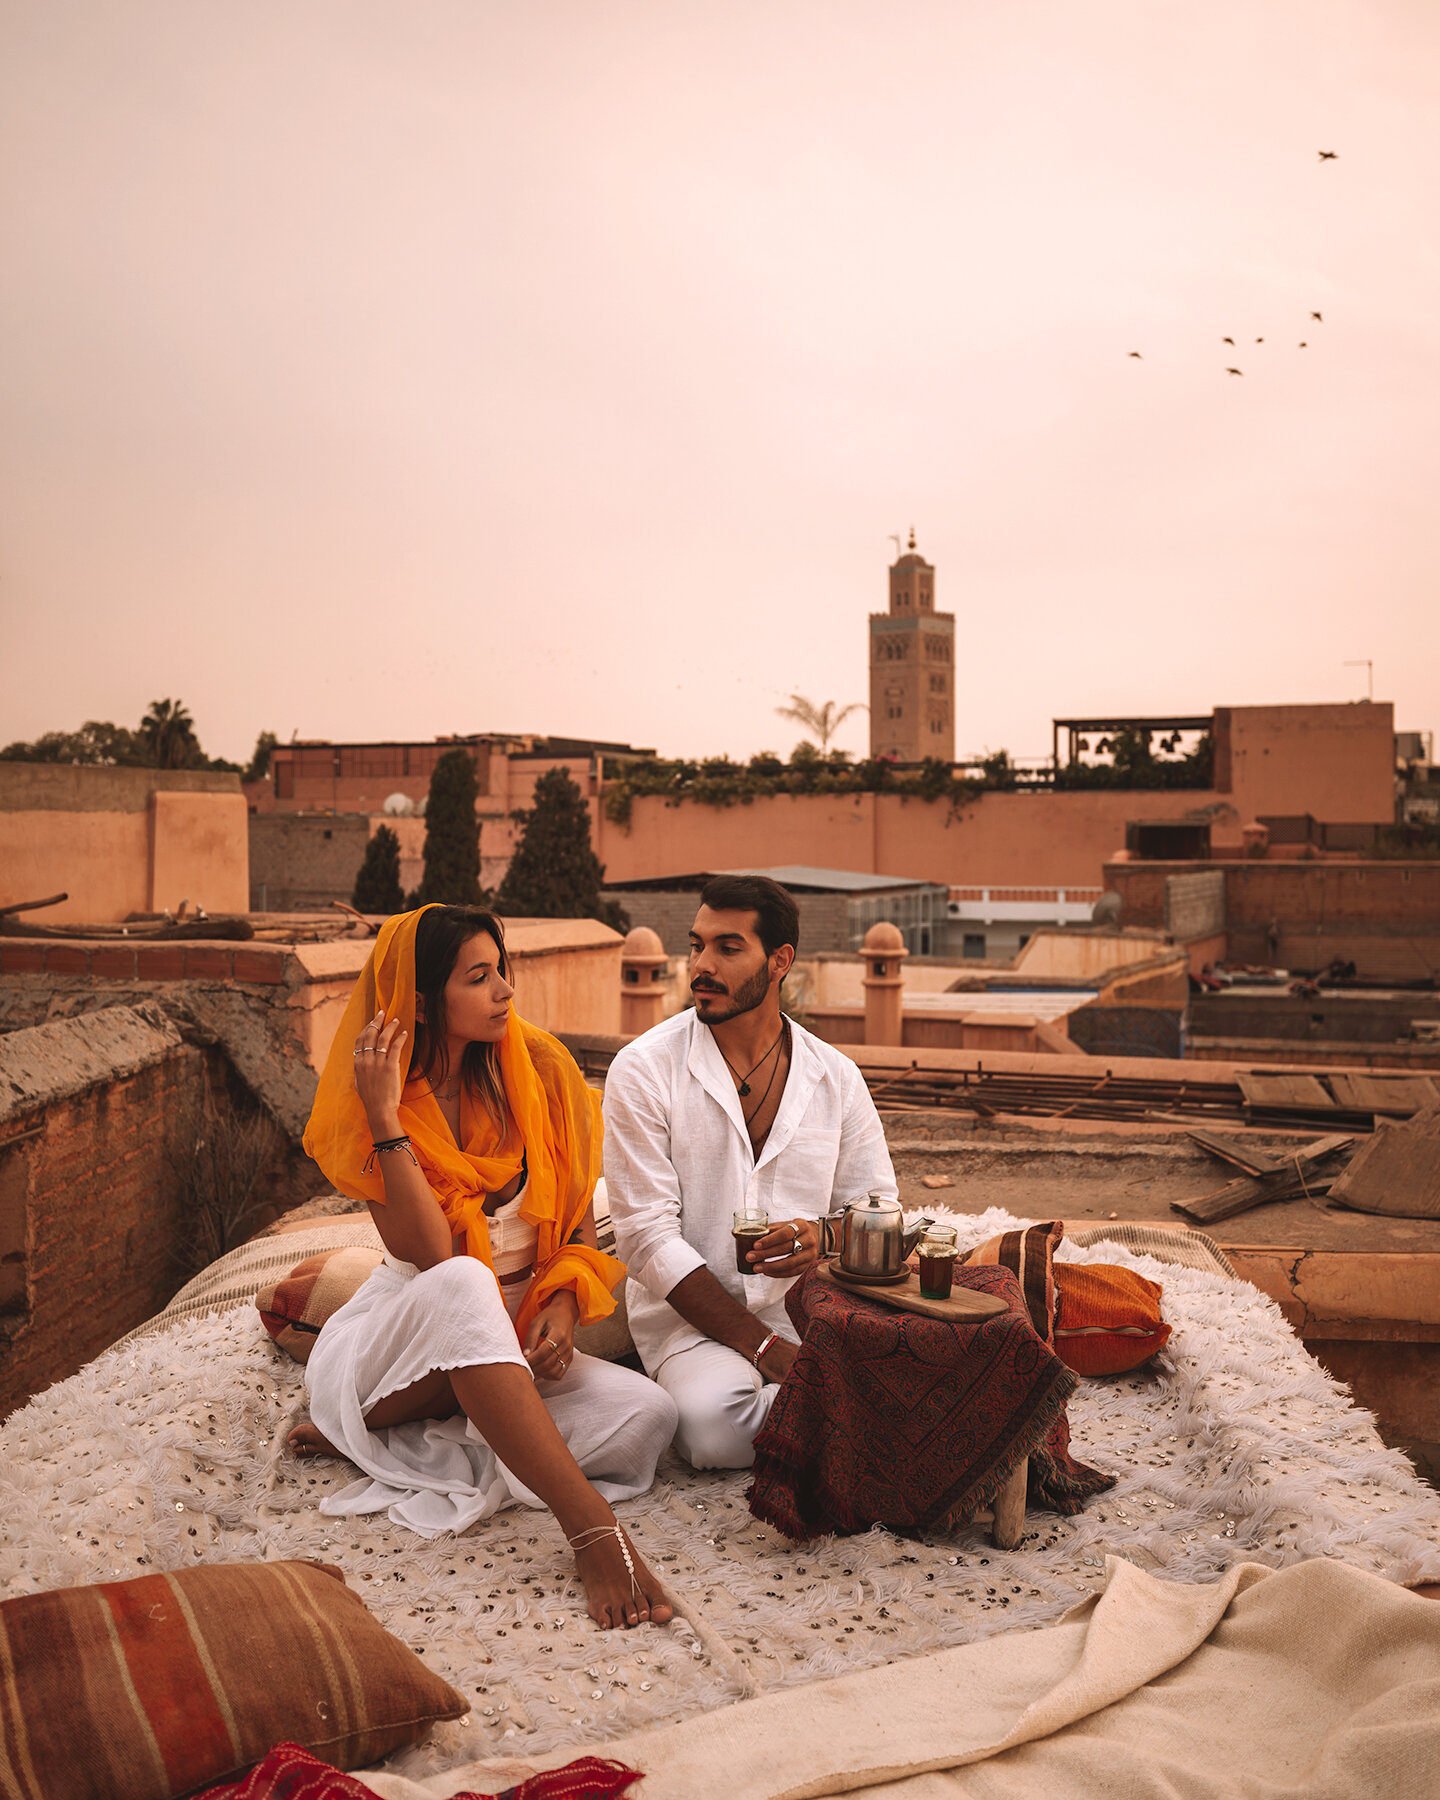 marrakech essential travel guide morocco beautiful places sunset rooftop instagrammable where to go freeoversea tea culture